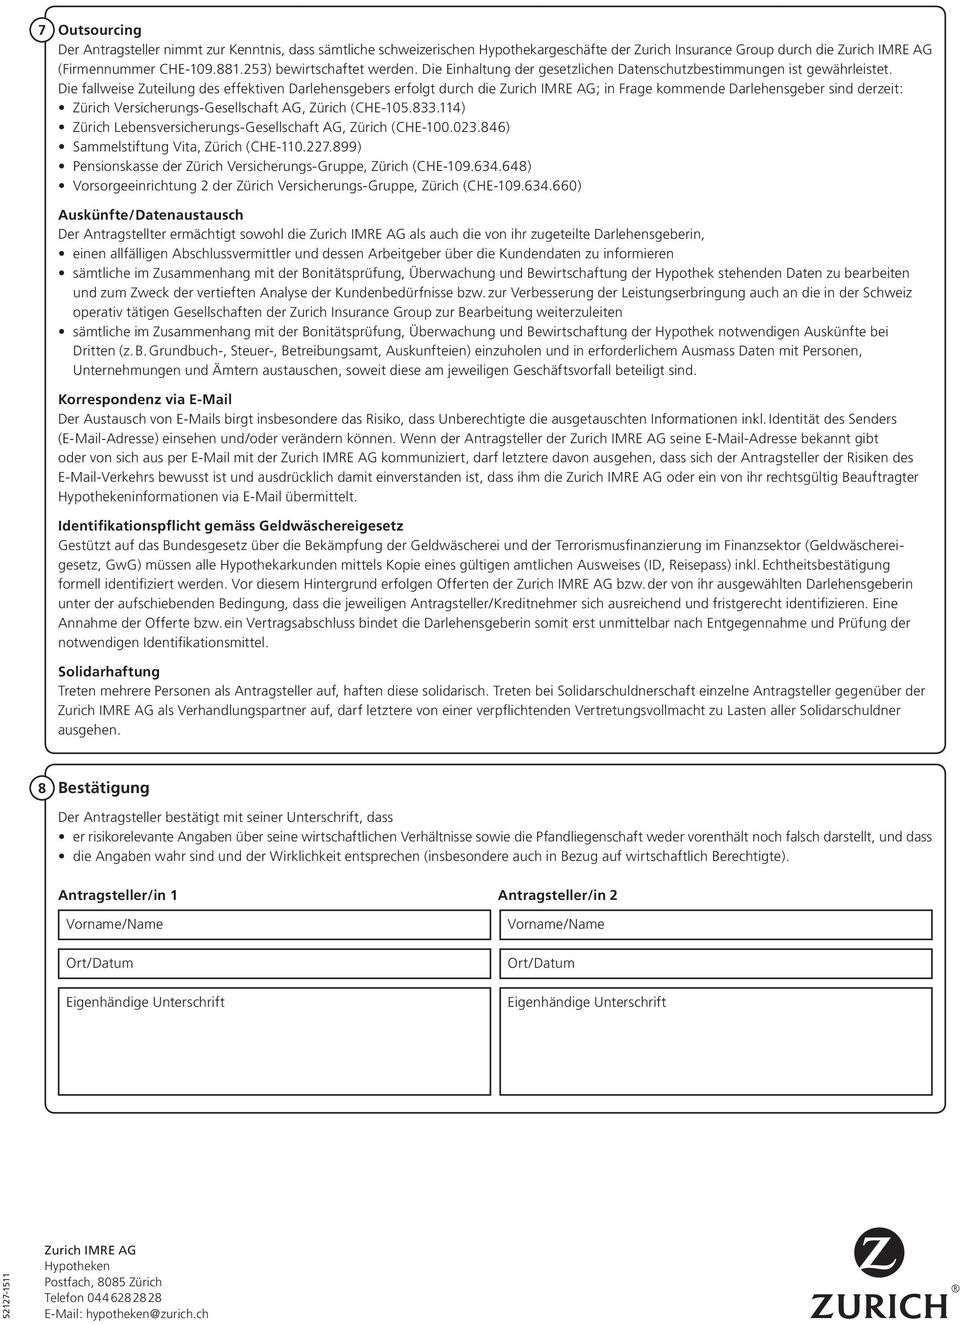 Schön Budgetbogen Vorlage Excel Galerie - Entry Level Resume ...